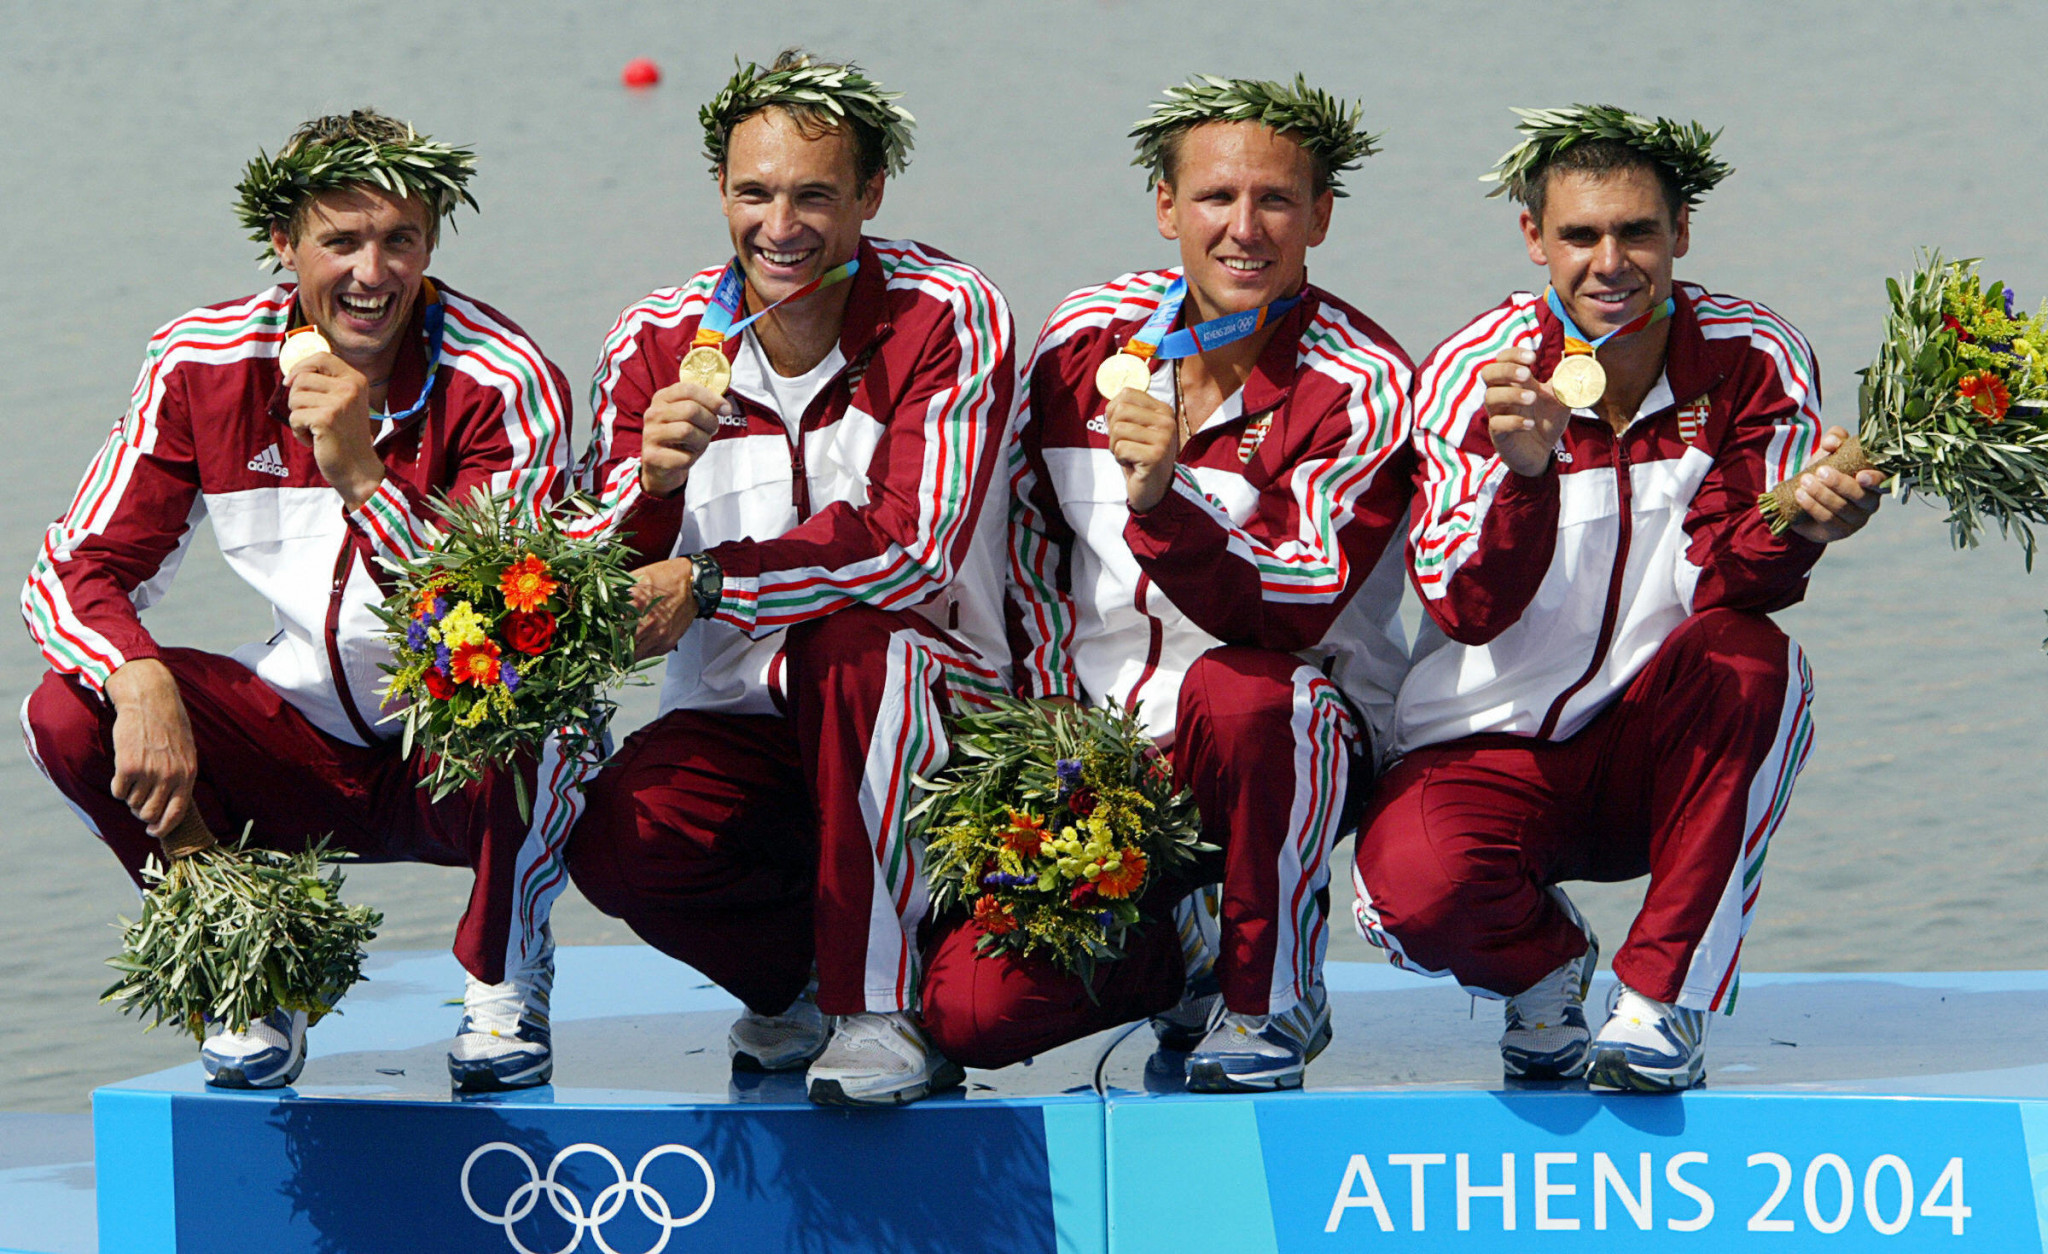 Gábor Horváth, left, is a two-time Olympic champion in sprint canoeing ©Getty Images